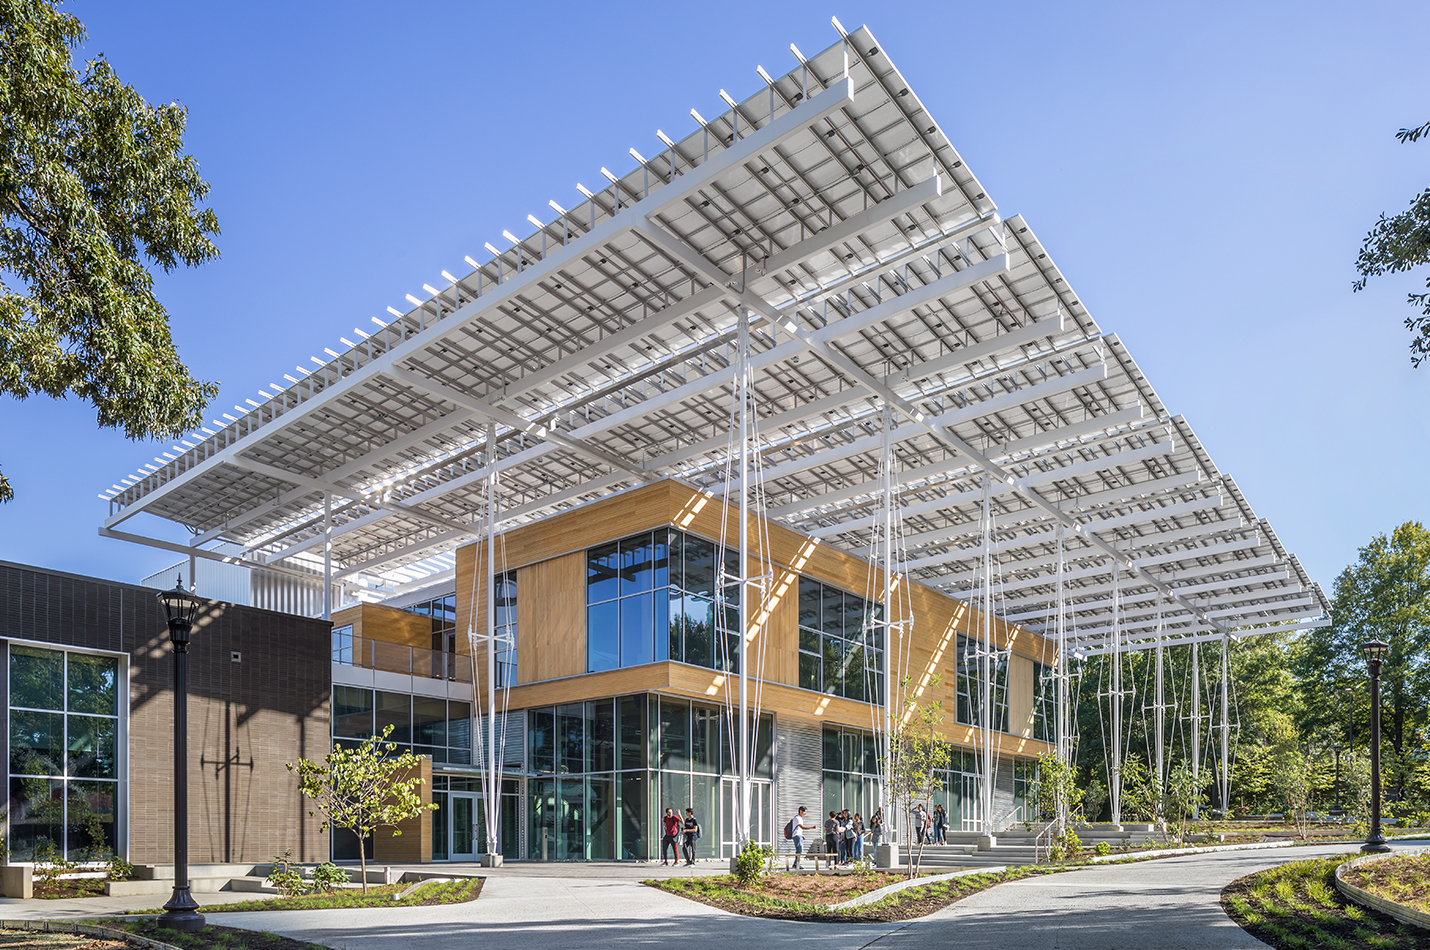 The Kendeda Building for Innovative Sustainable Design. Photo: Jonathan Hillyer.